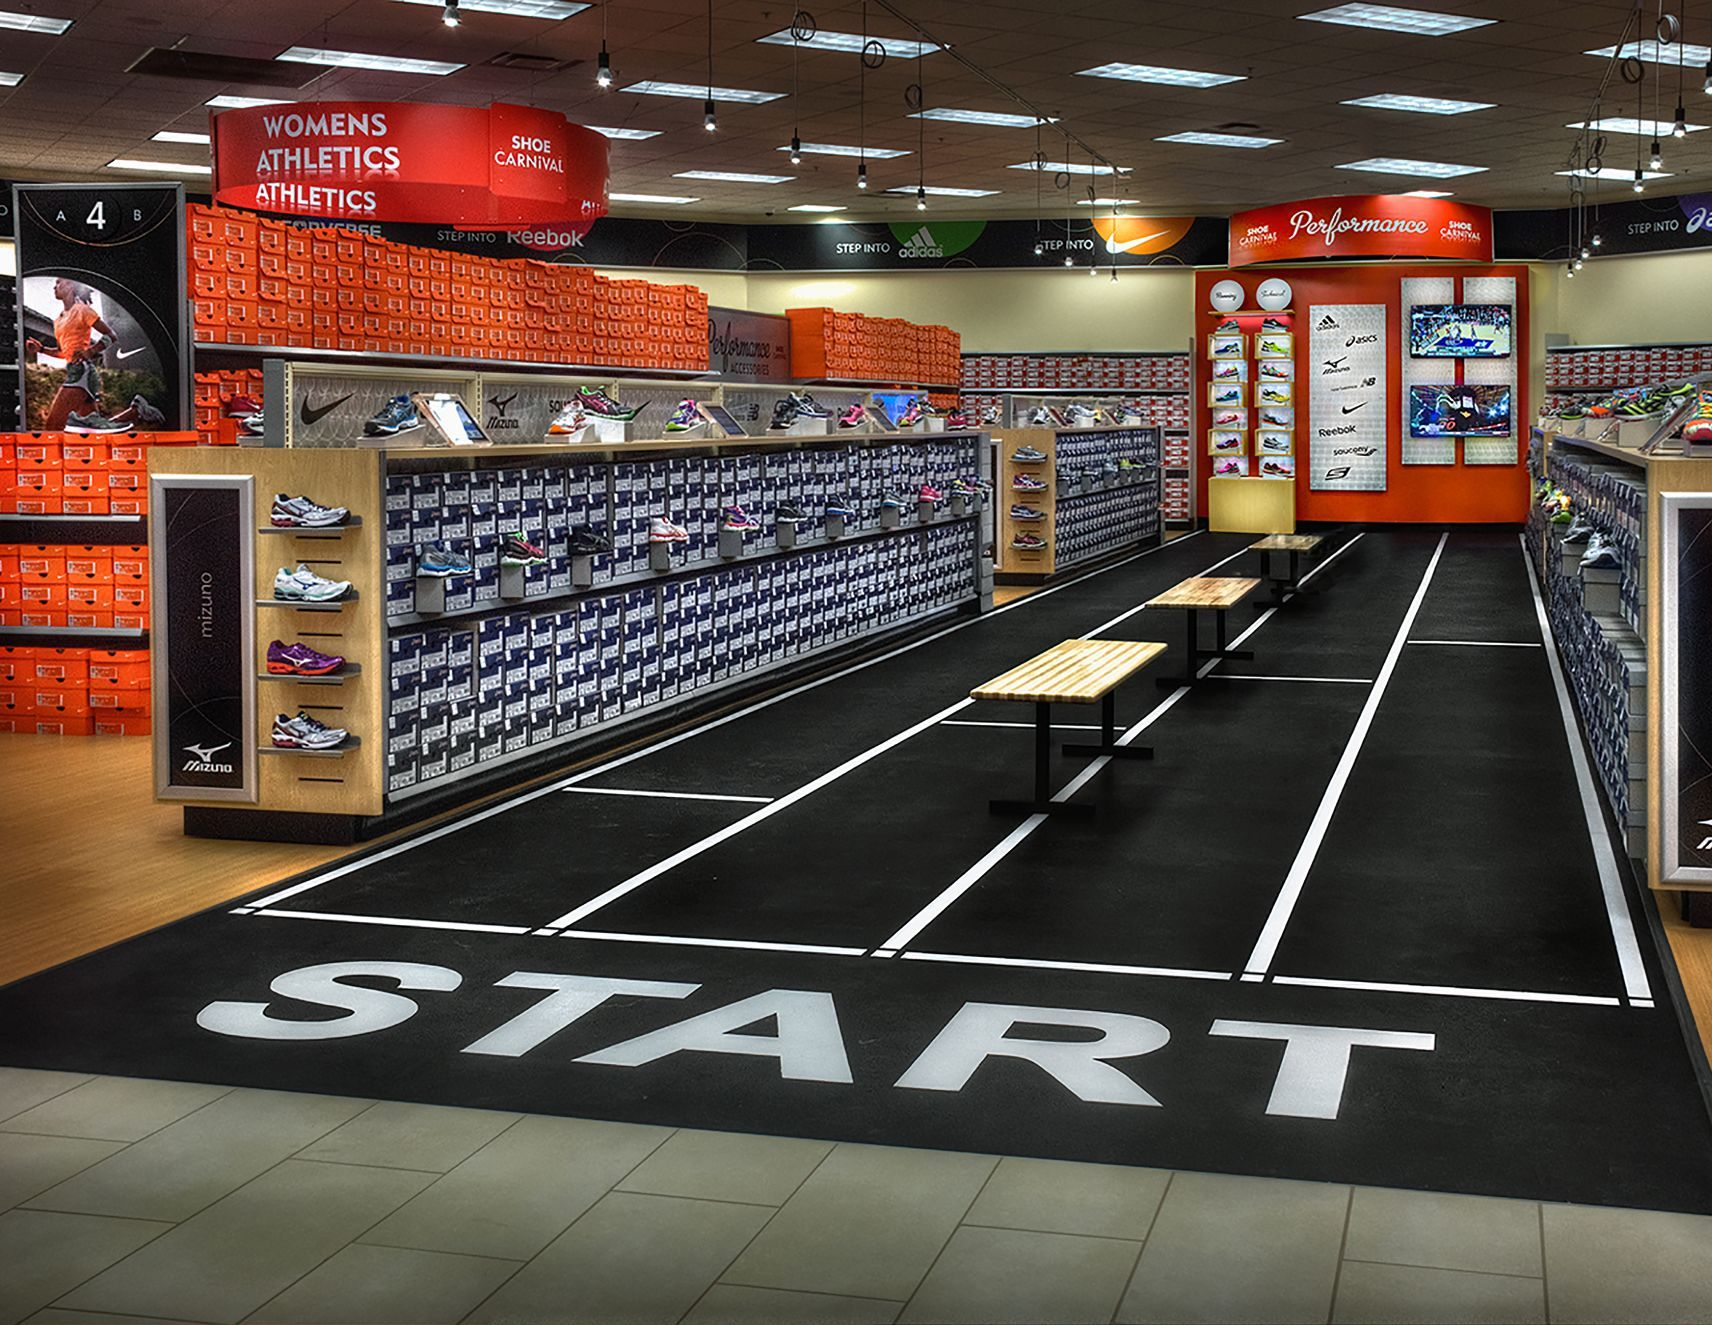 Shoe Carnival | Deer Creek Shopping Center, Maplewood, MO. Get shoes, boots, and sandals for your entire family at Shoe Carnival in Maplewood, MO! For a fun and exciting shopping experience, check out Shoe Carnival, located at Laclede Station Rd in Maplewood, MO.